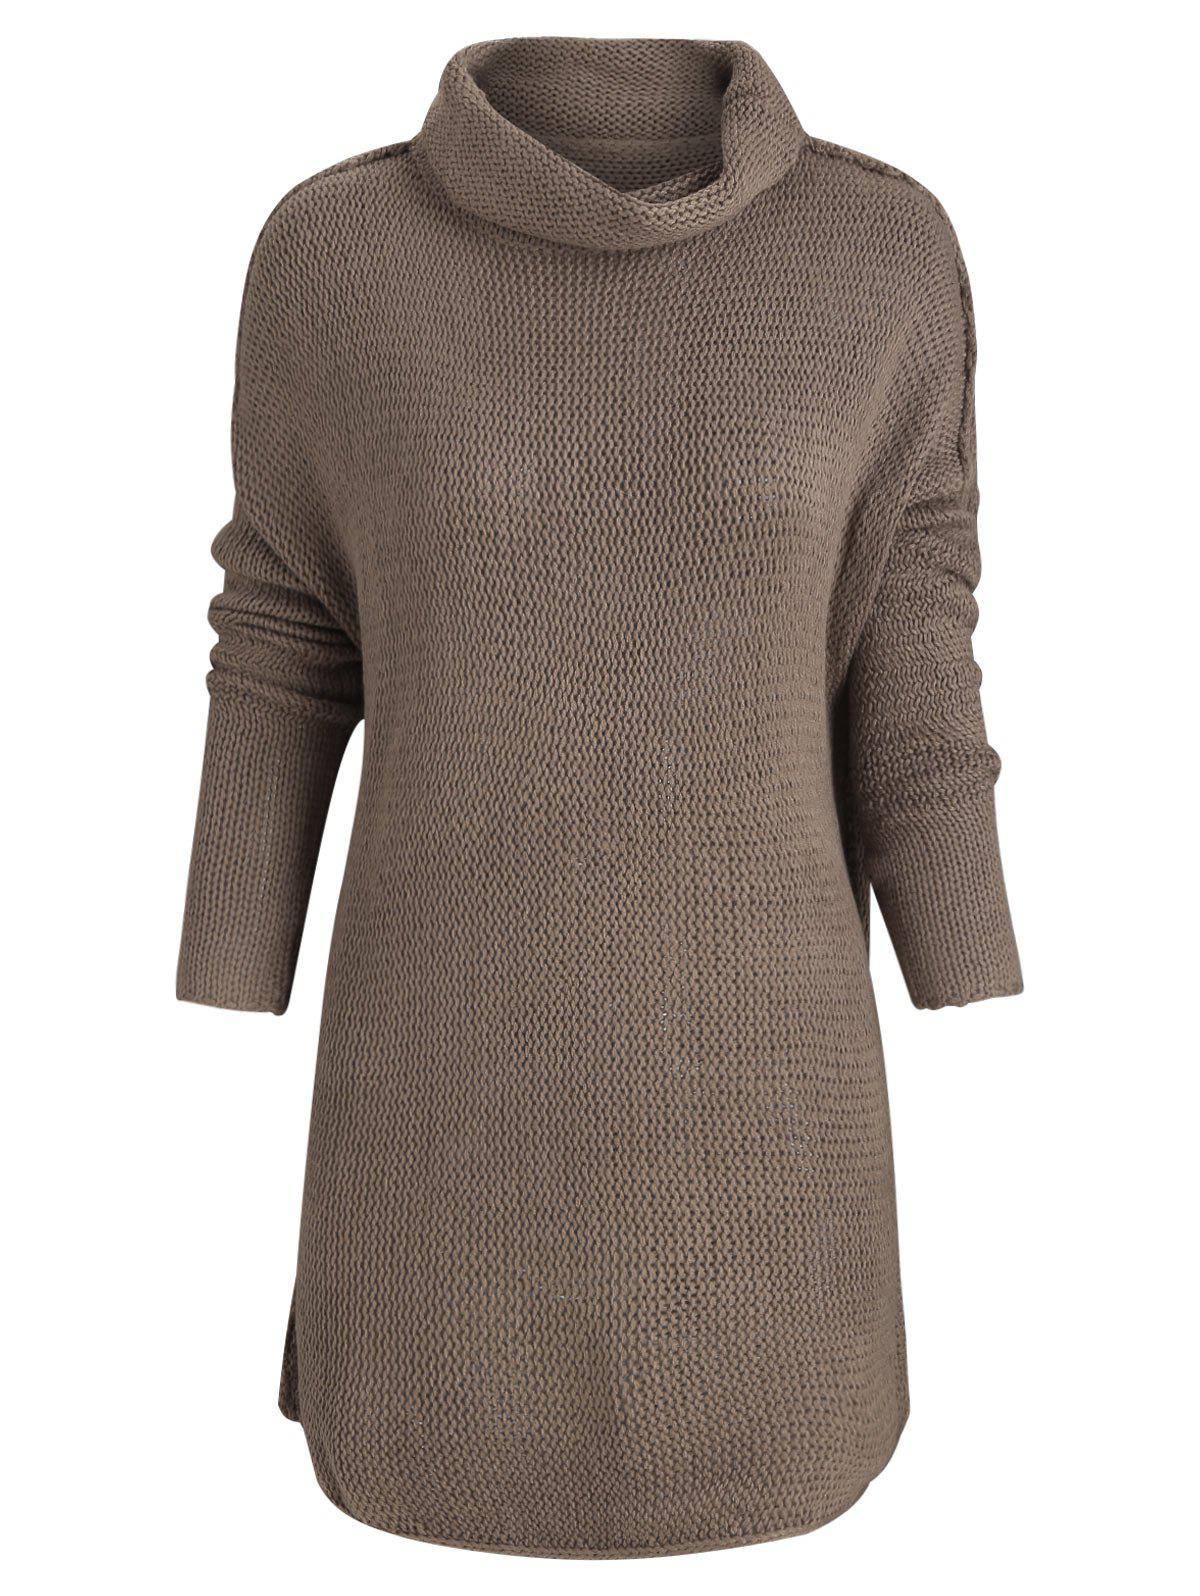 Chic Turtleneck Drop Shoulder Tunic Sweater